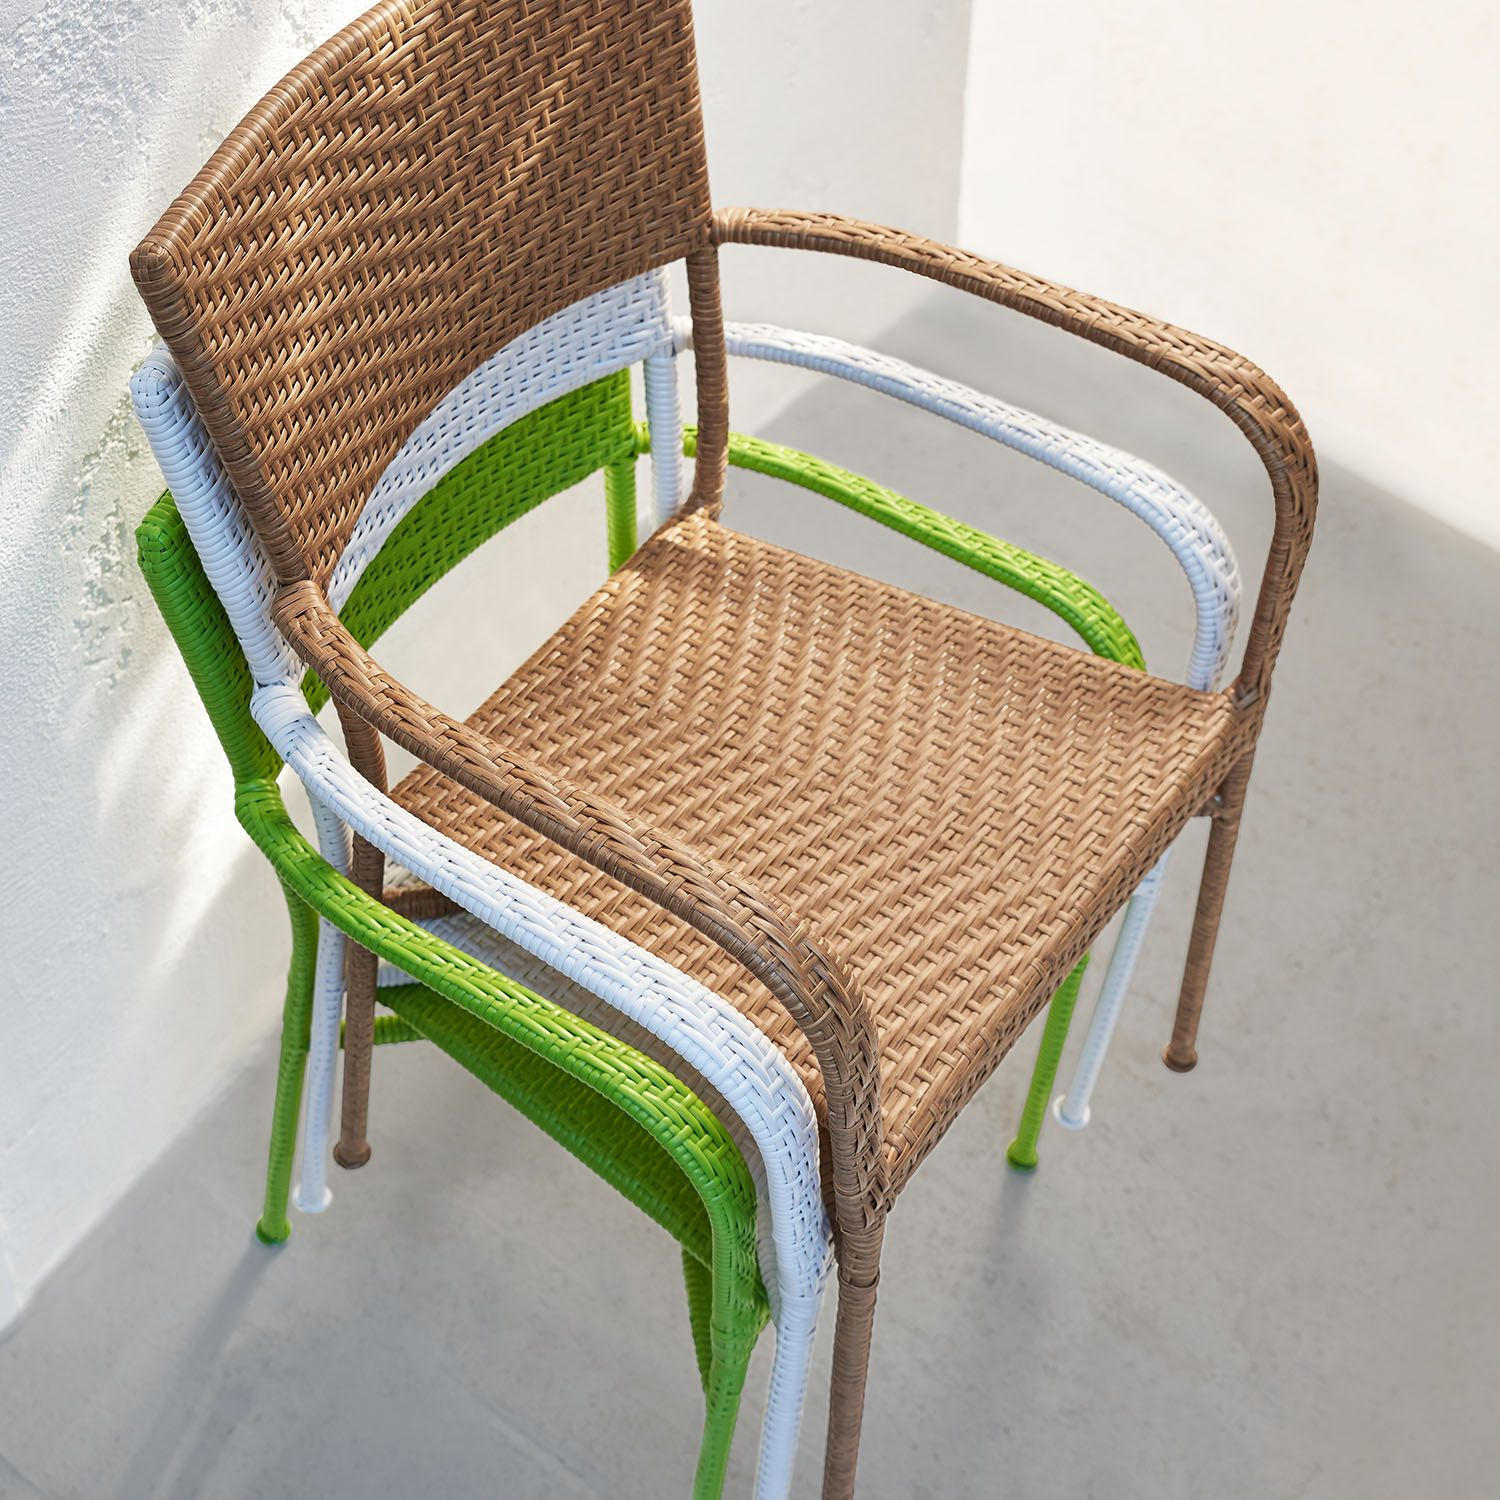 Del Rey Light Brown Stacking Chair Hammock Swing Chair Backyard Seating Outdoor Dining Chairs